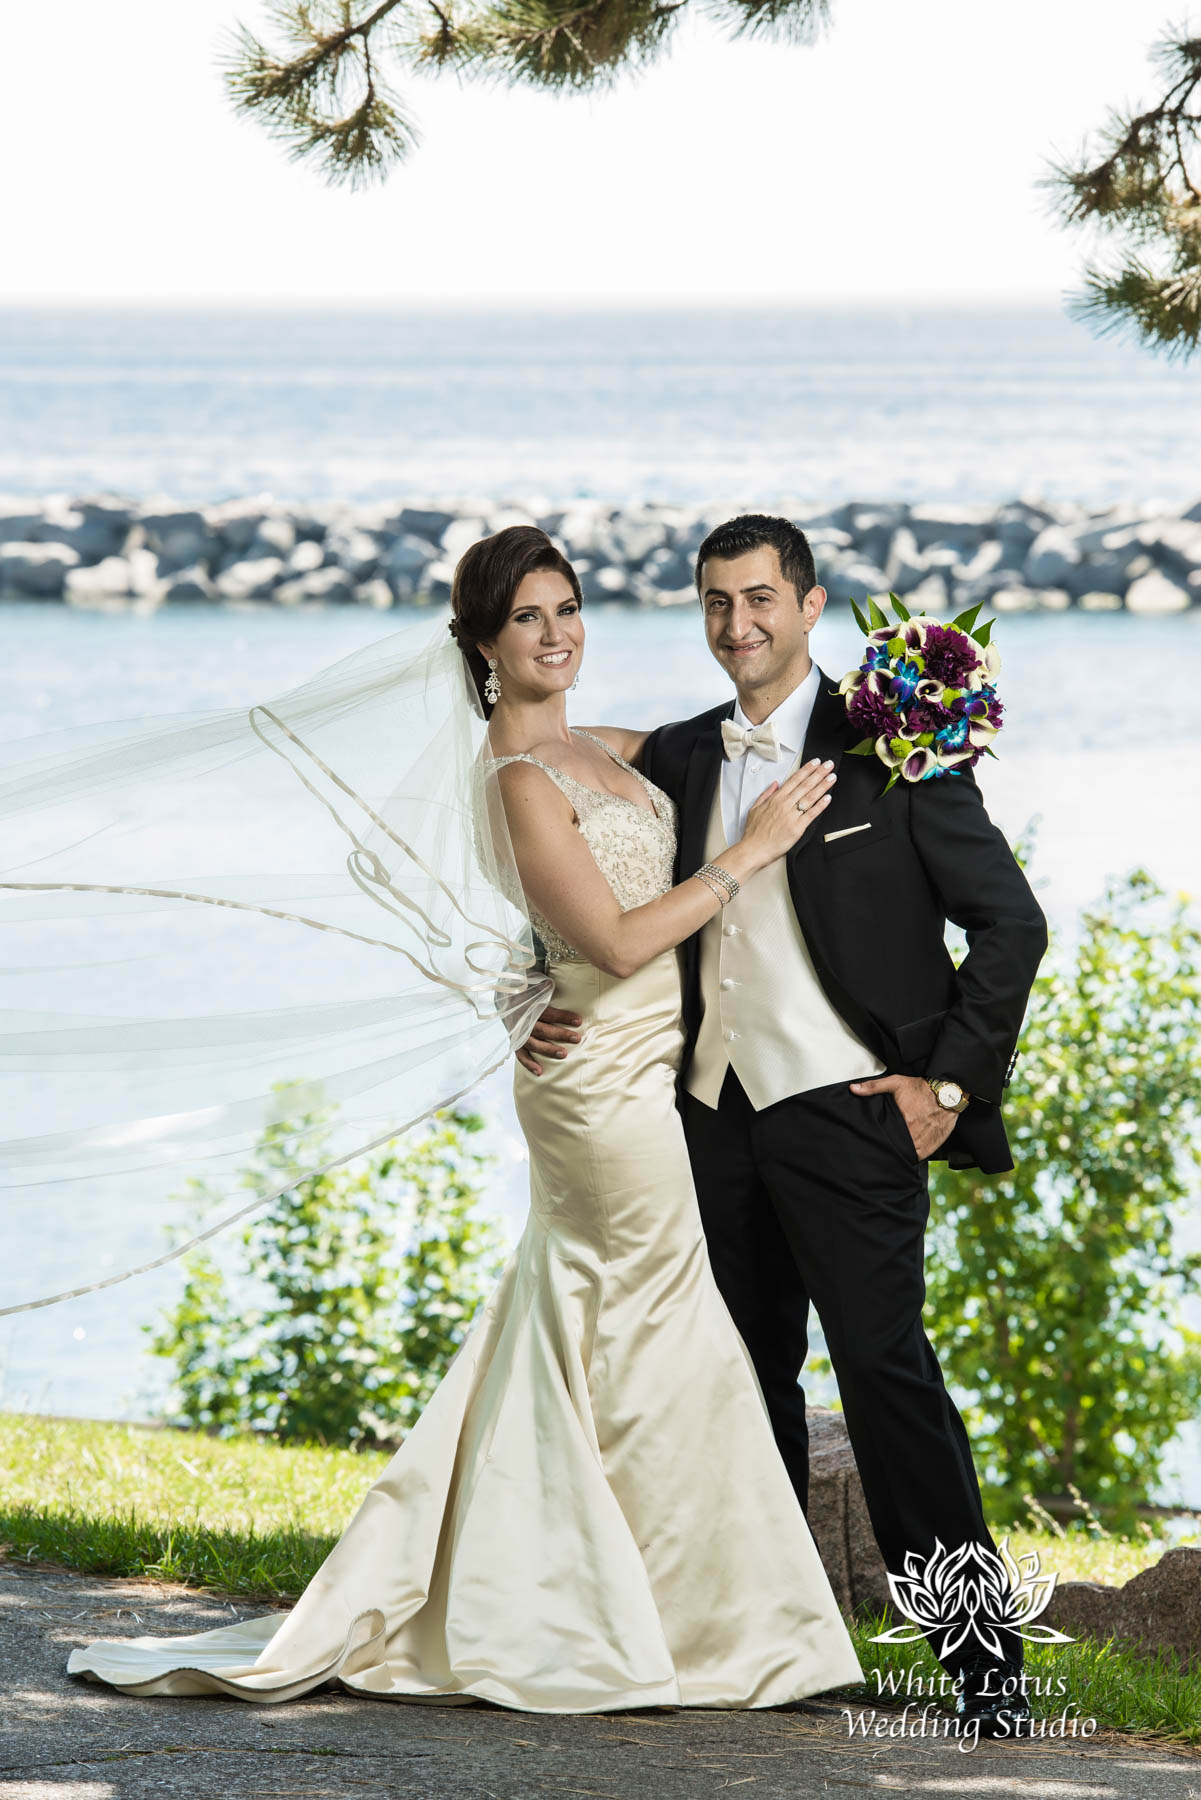 097 - Wedding - Toronto - Lakeshore wedding - PW